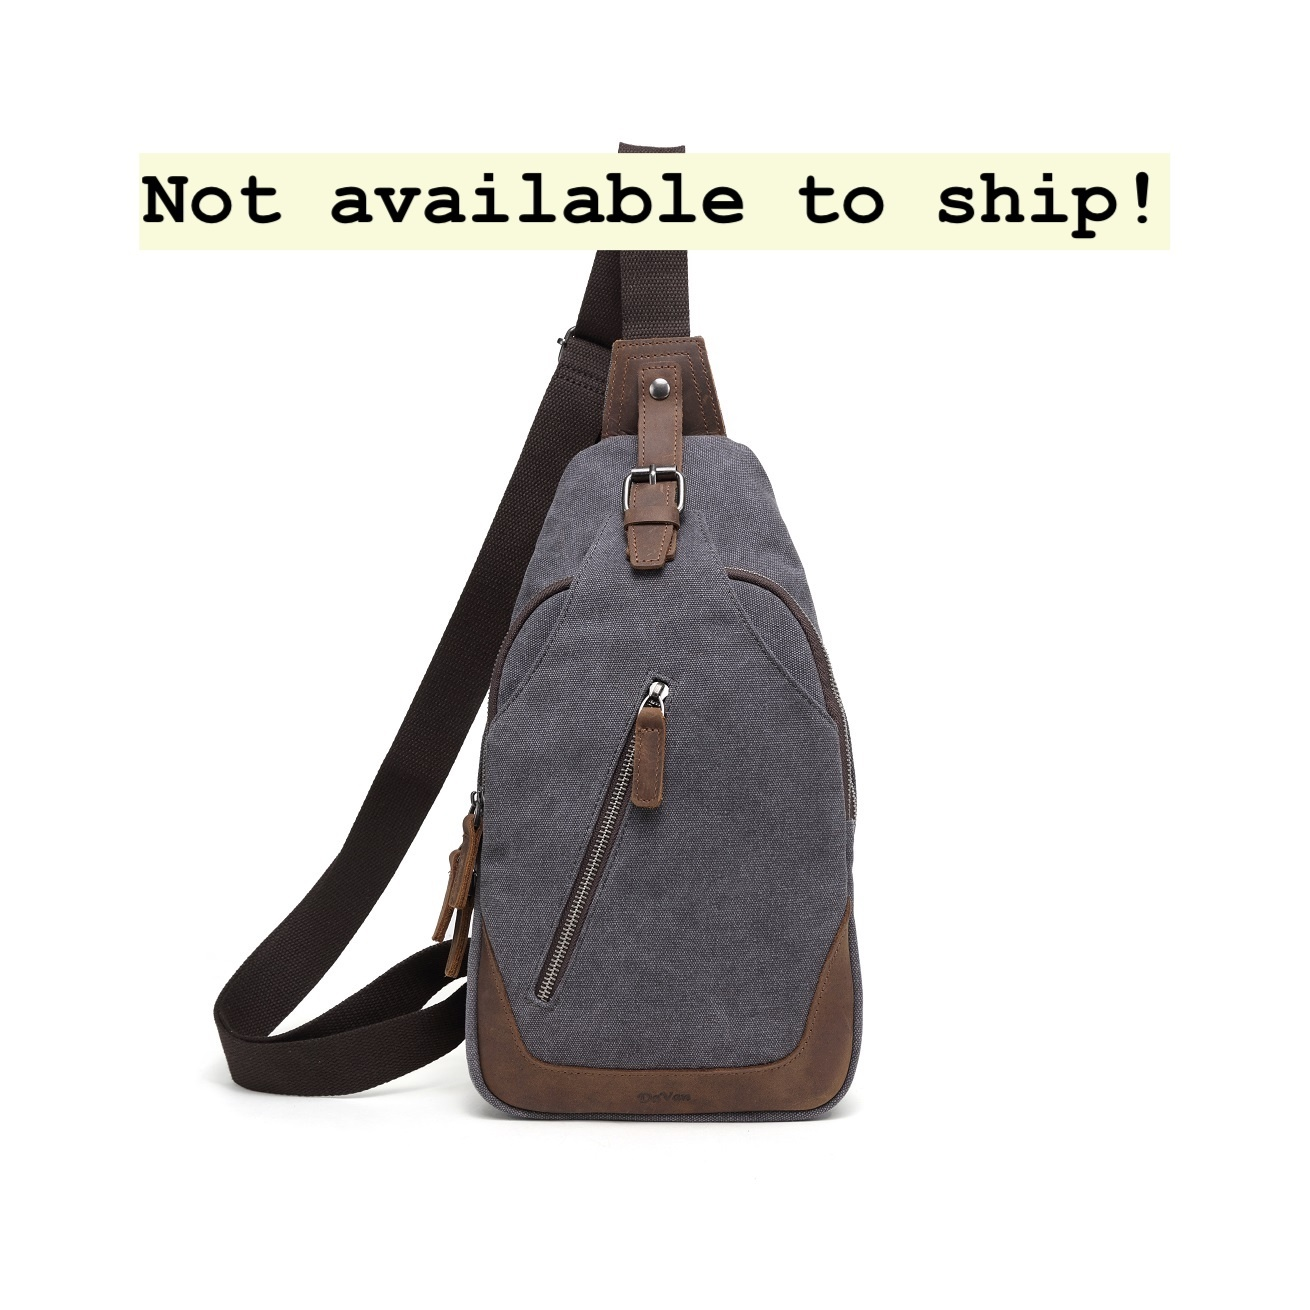 DaVan SLB540 Sling Bag- Grey